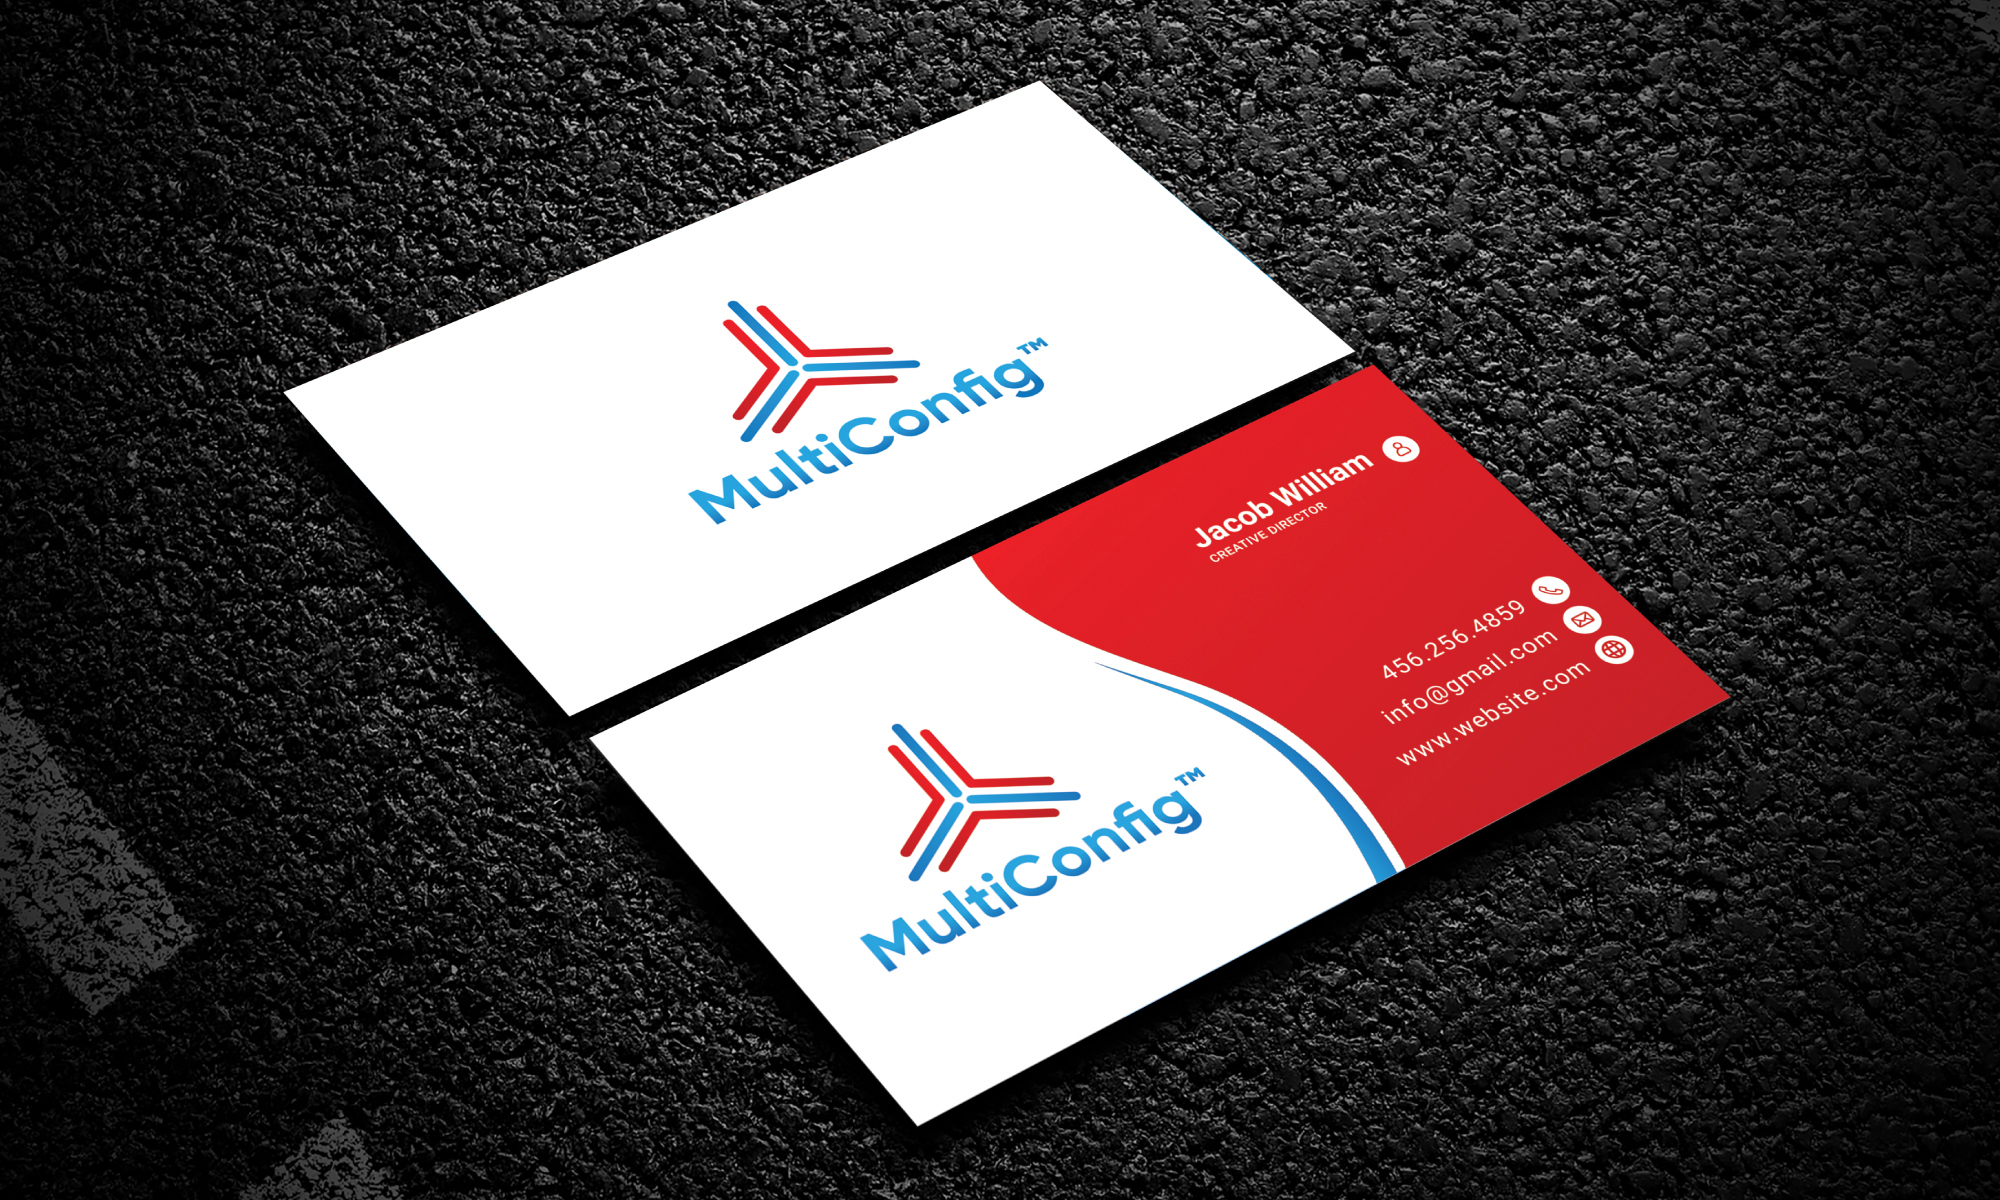 I will design modern,  elegant and professional business card